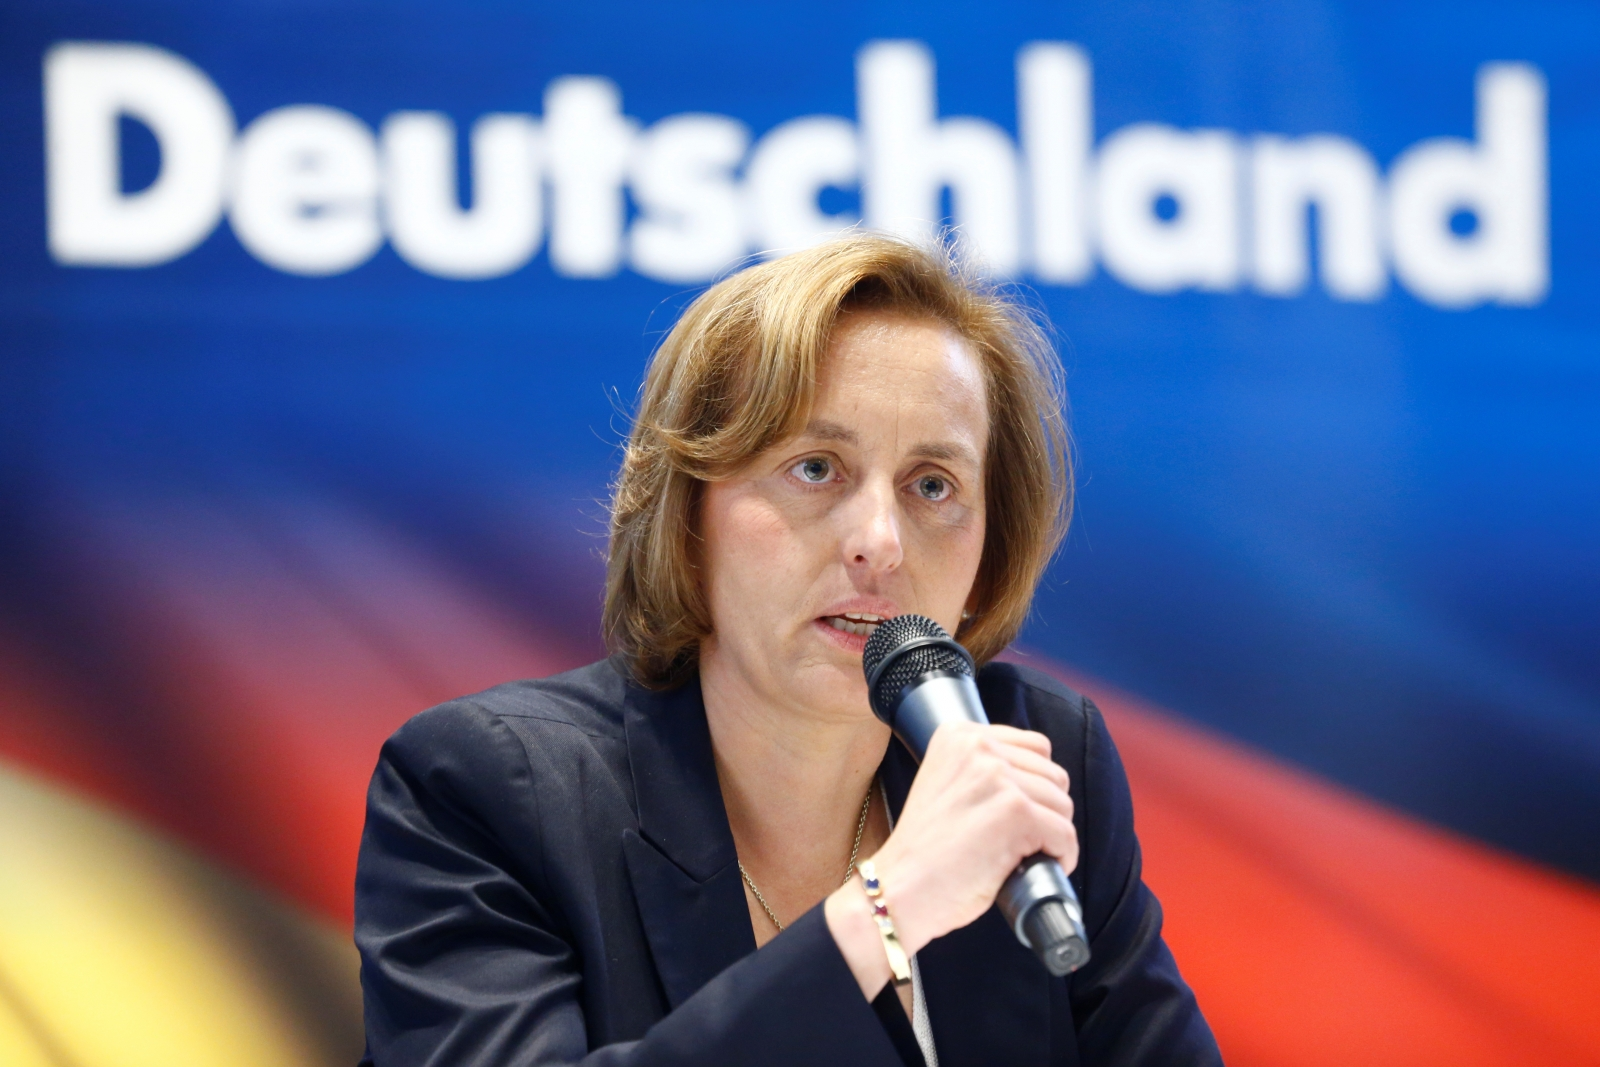 Anti-Muslim tweet lands German minister in hot water with police